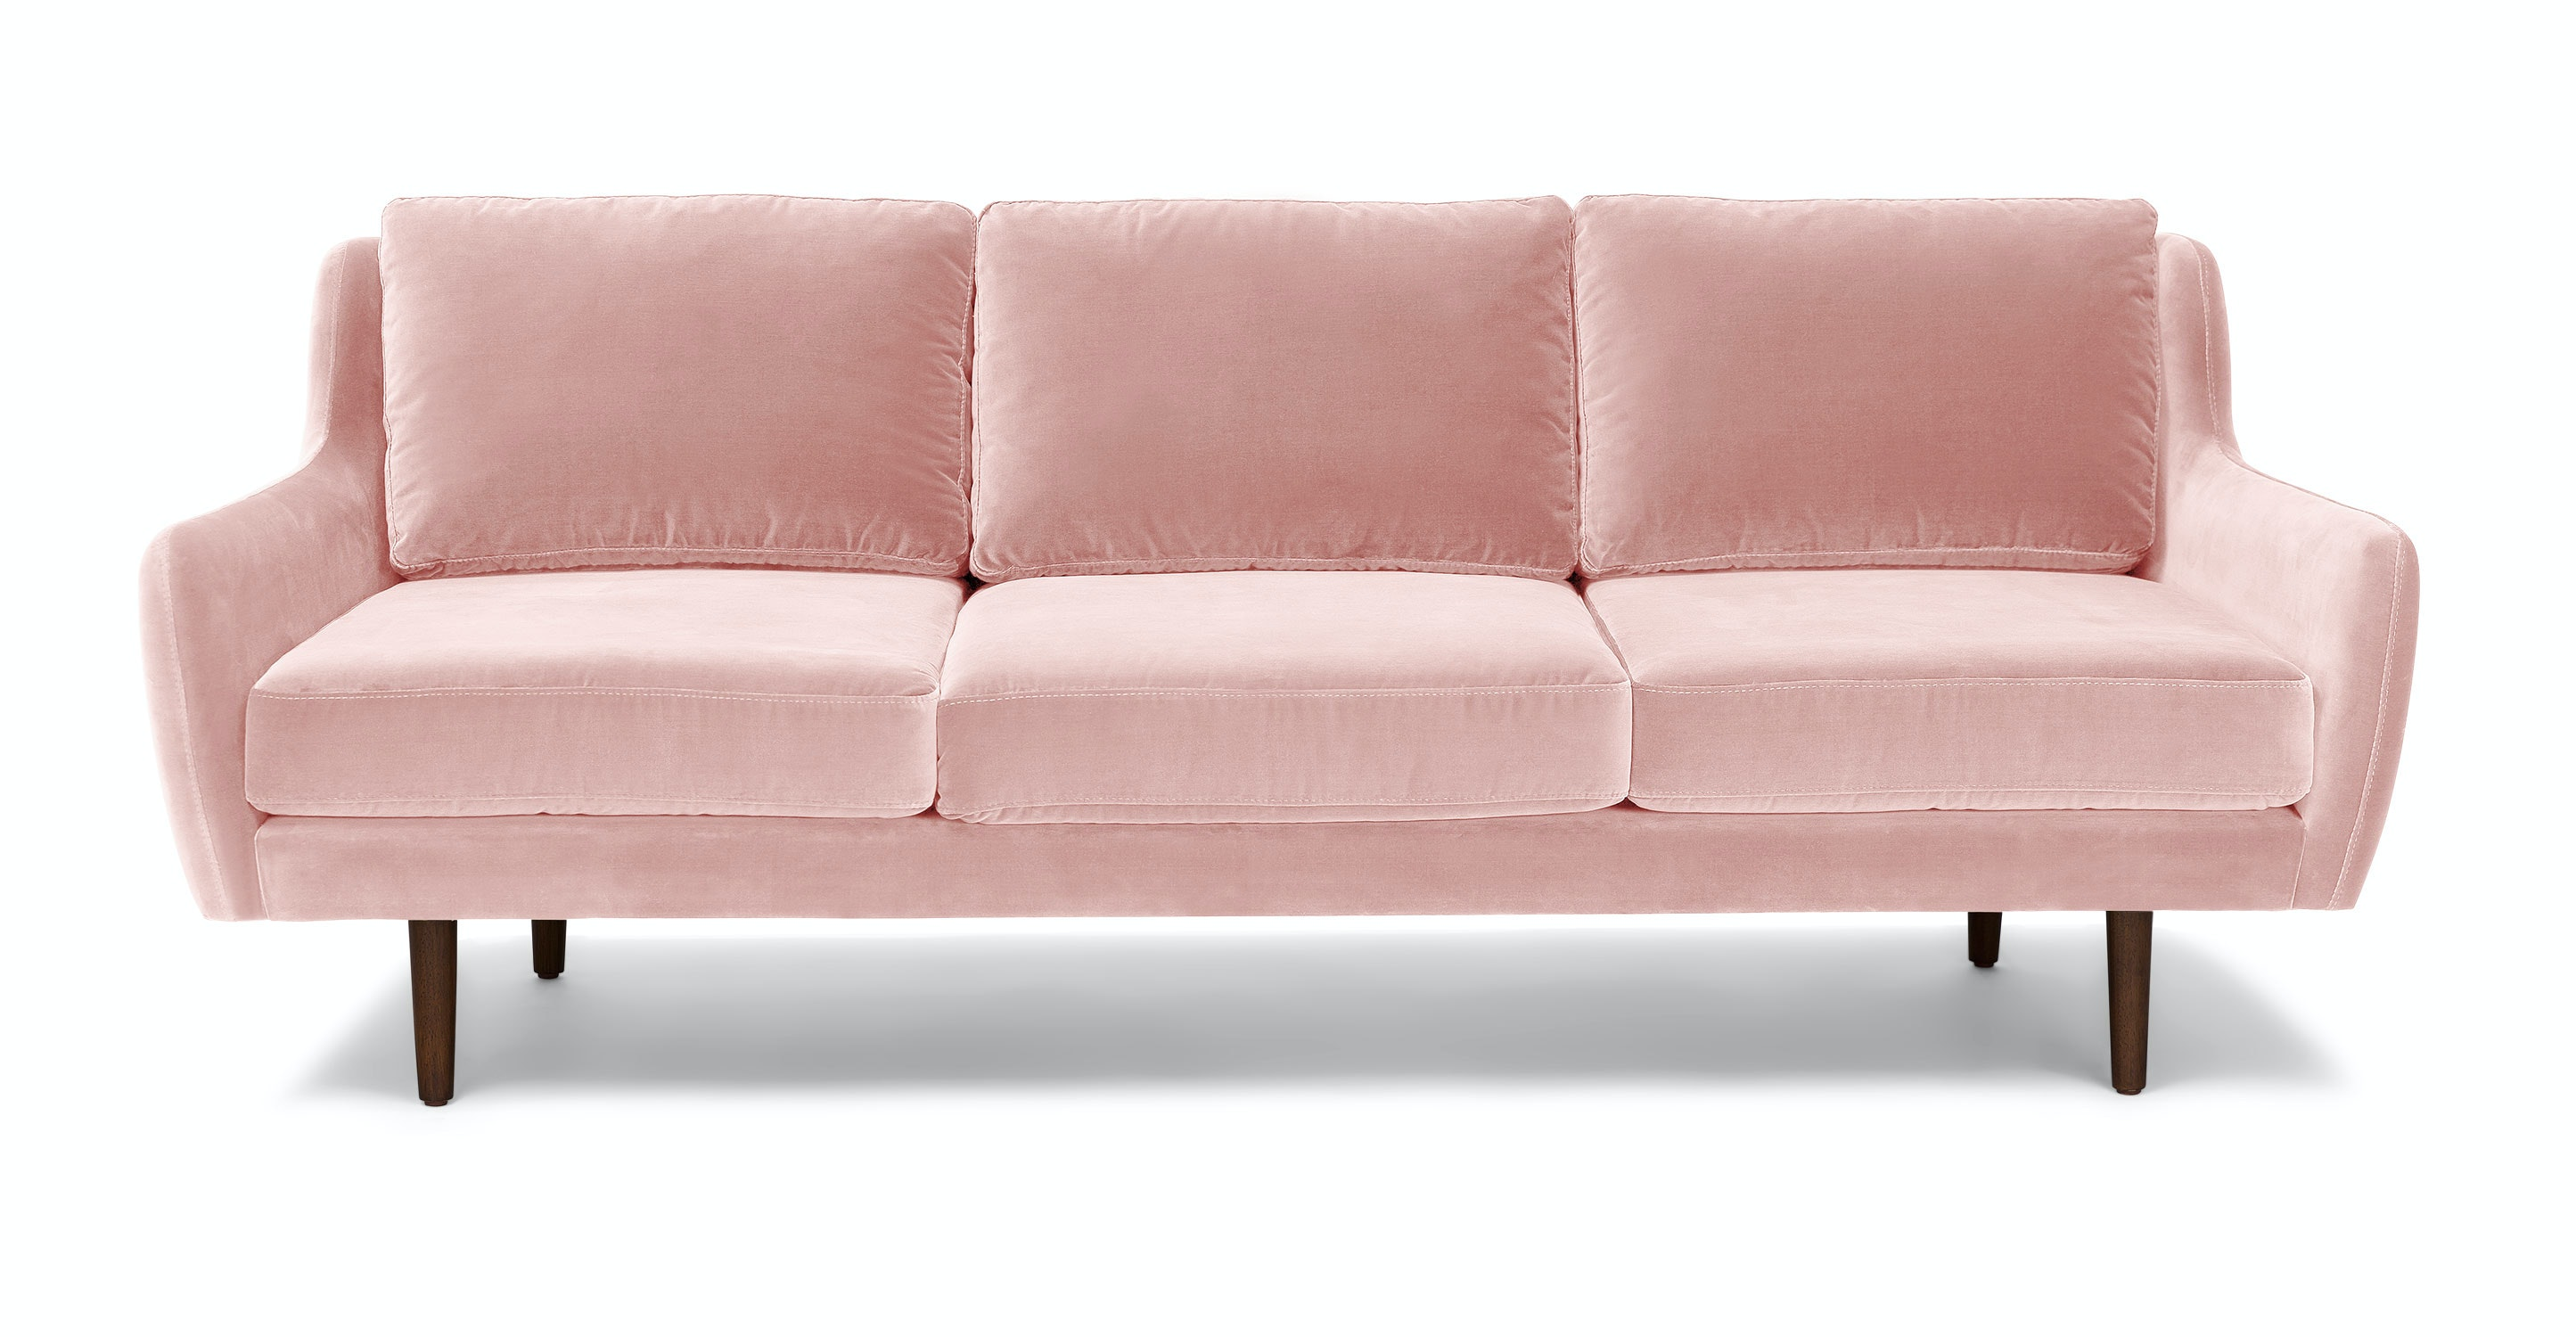 Matrix Blush Pink Sofa